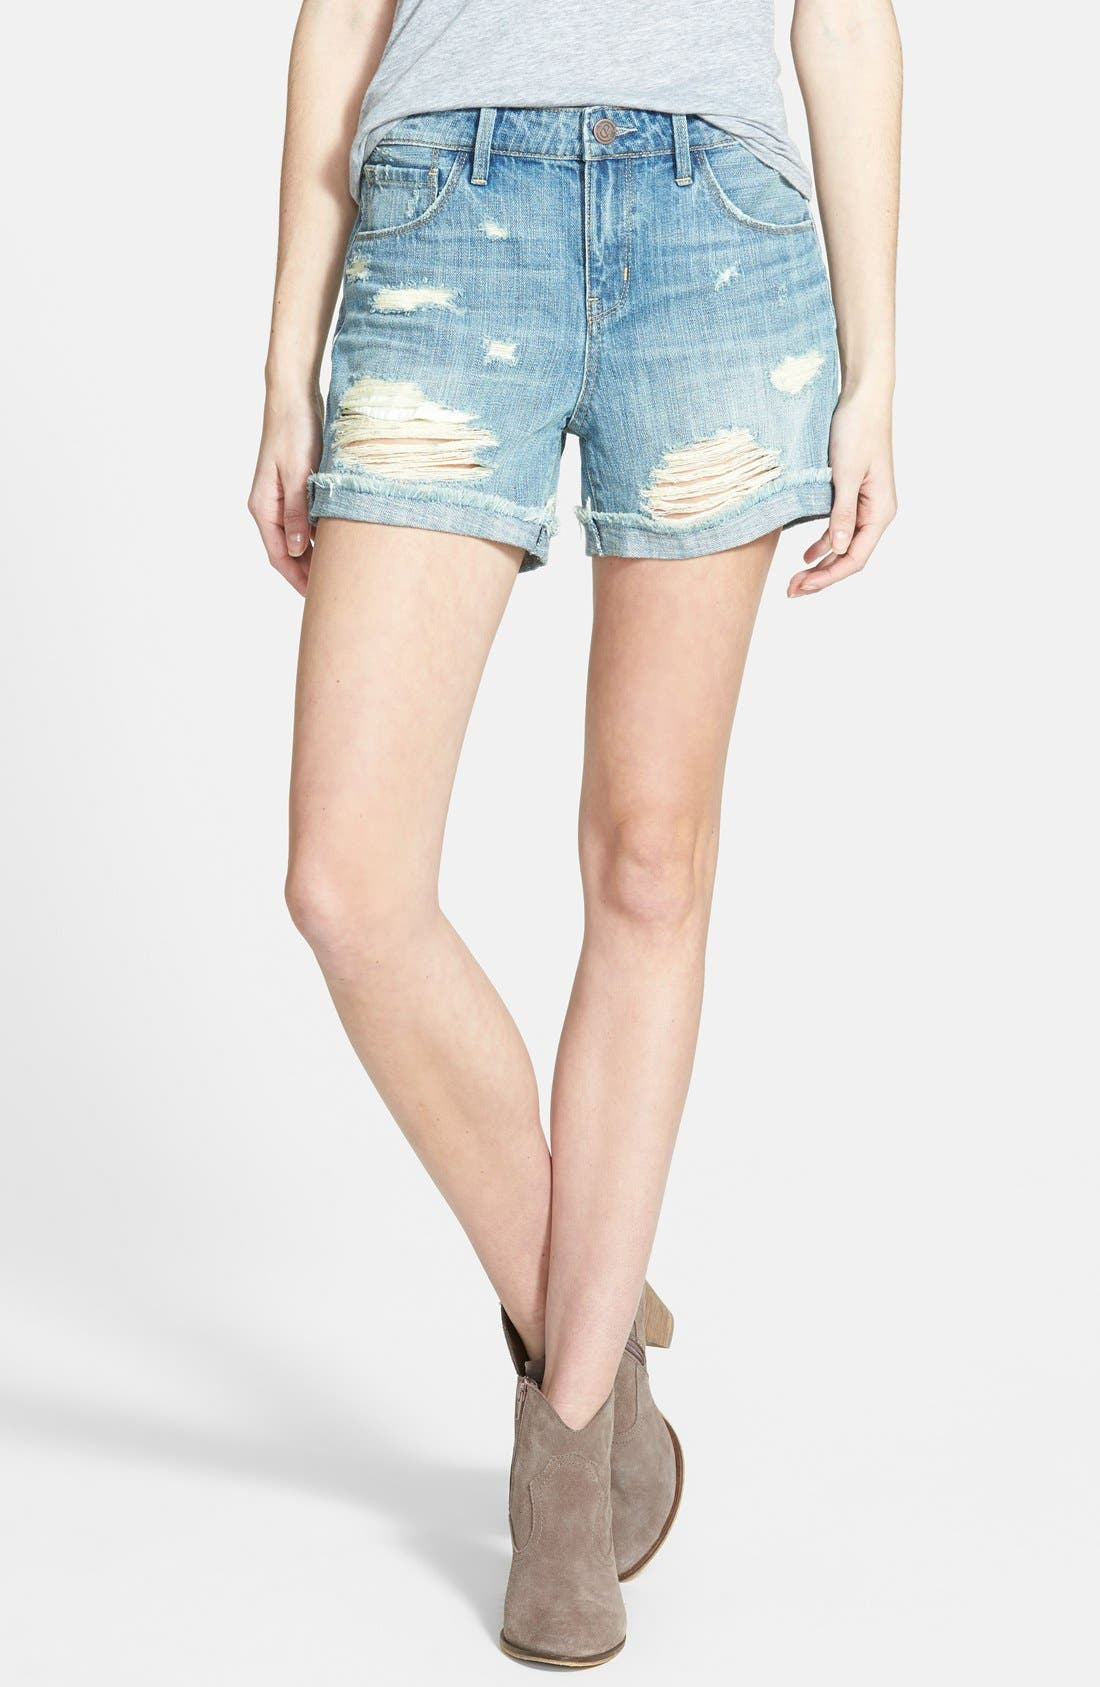 Treasure&Bond Cuffed Boyfriend Shorts,                             Main thumbnail 1, color,                             Beehive Light Destroy